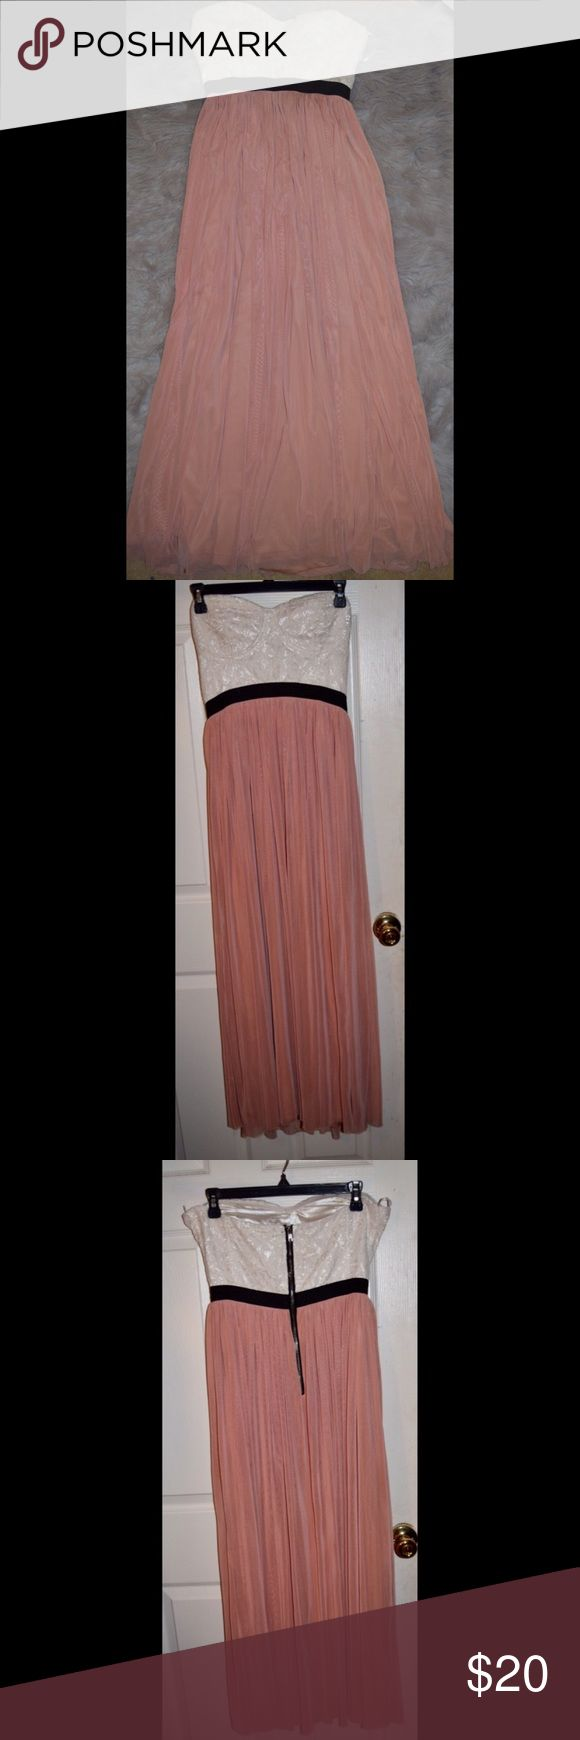 Body Central Strapless Maxi Dress. Body Central Peach/Ivory Strapless Maxi Dress. Does have a lining under the bottom half. Need more photos or more info? Feel free to ask. I'll do my best.  Body Central Dresses Maxi